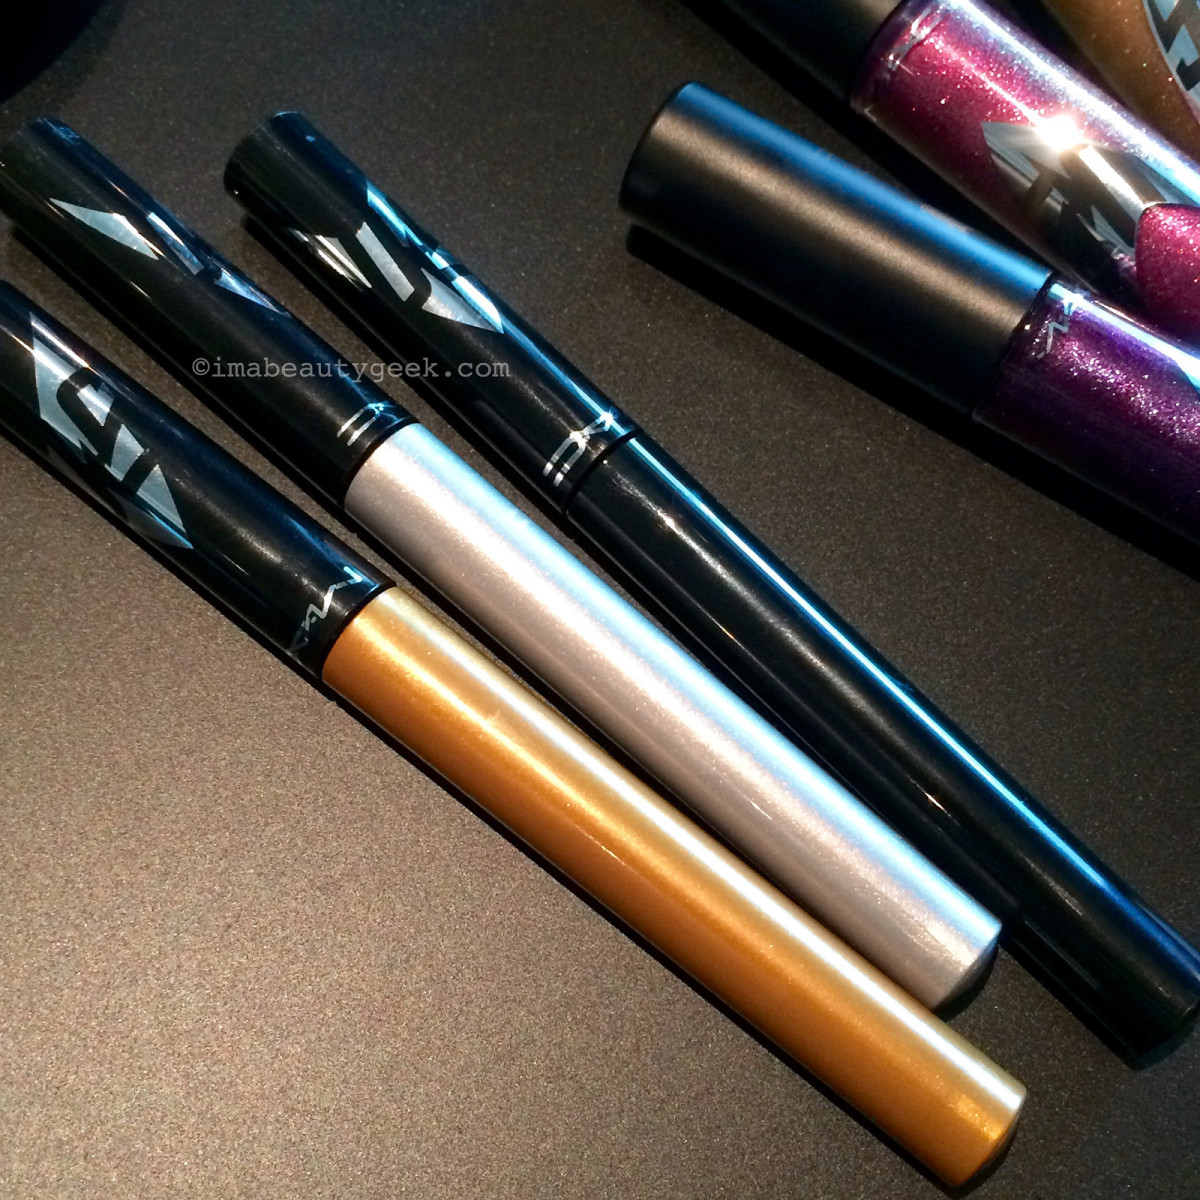 MAC Star Trek superslick liquid liners_imabeautygeek.com